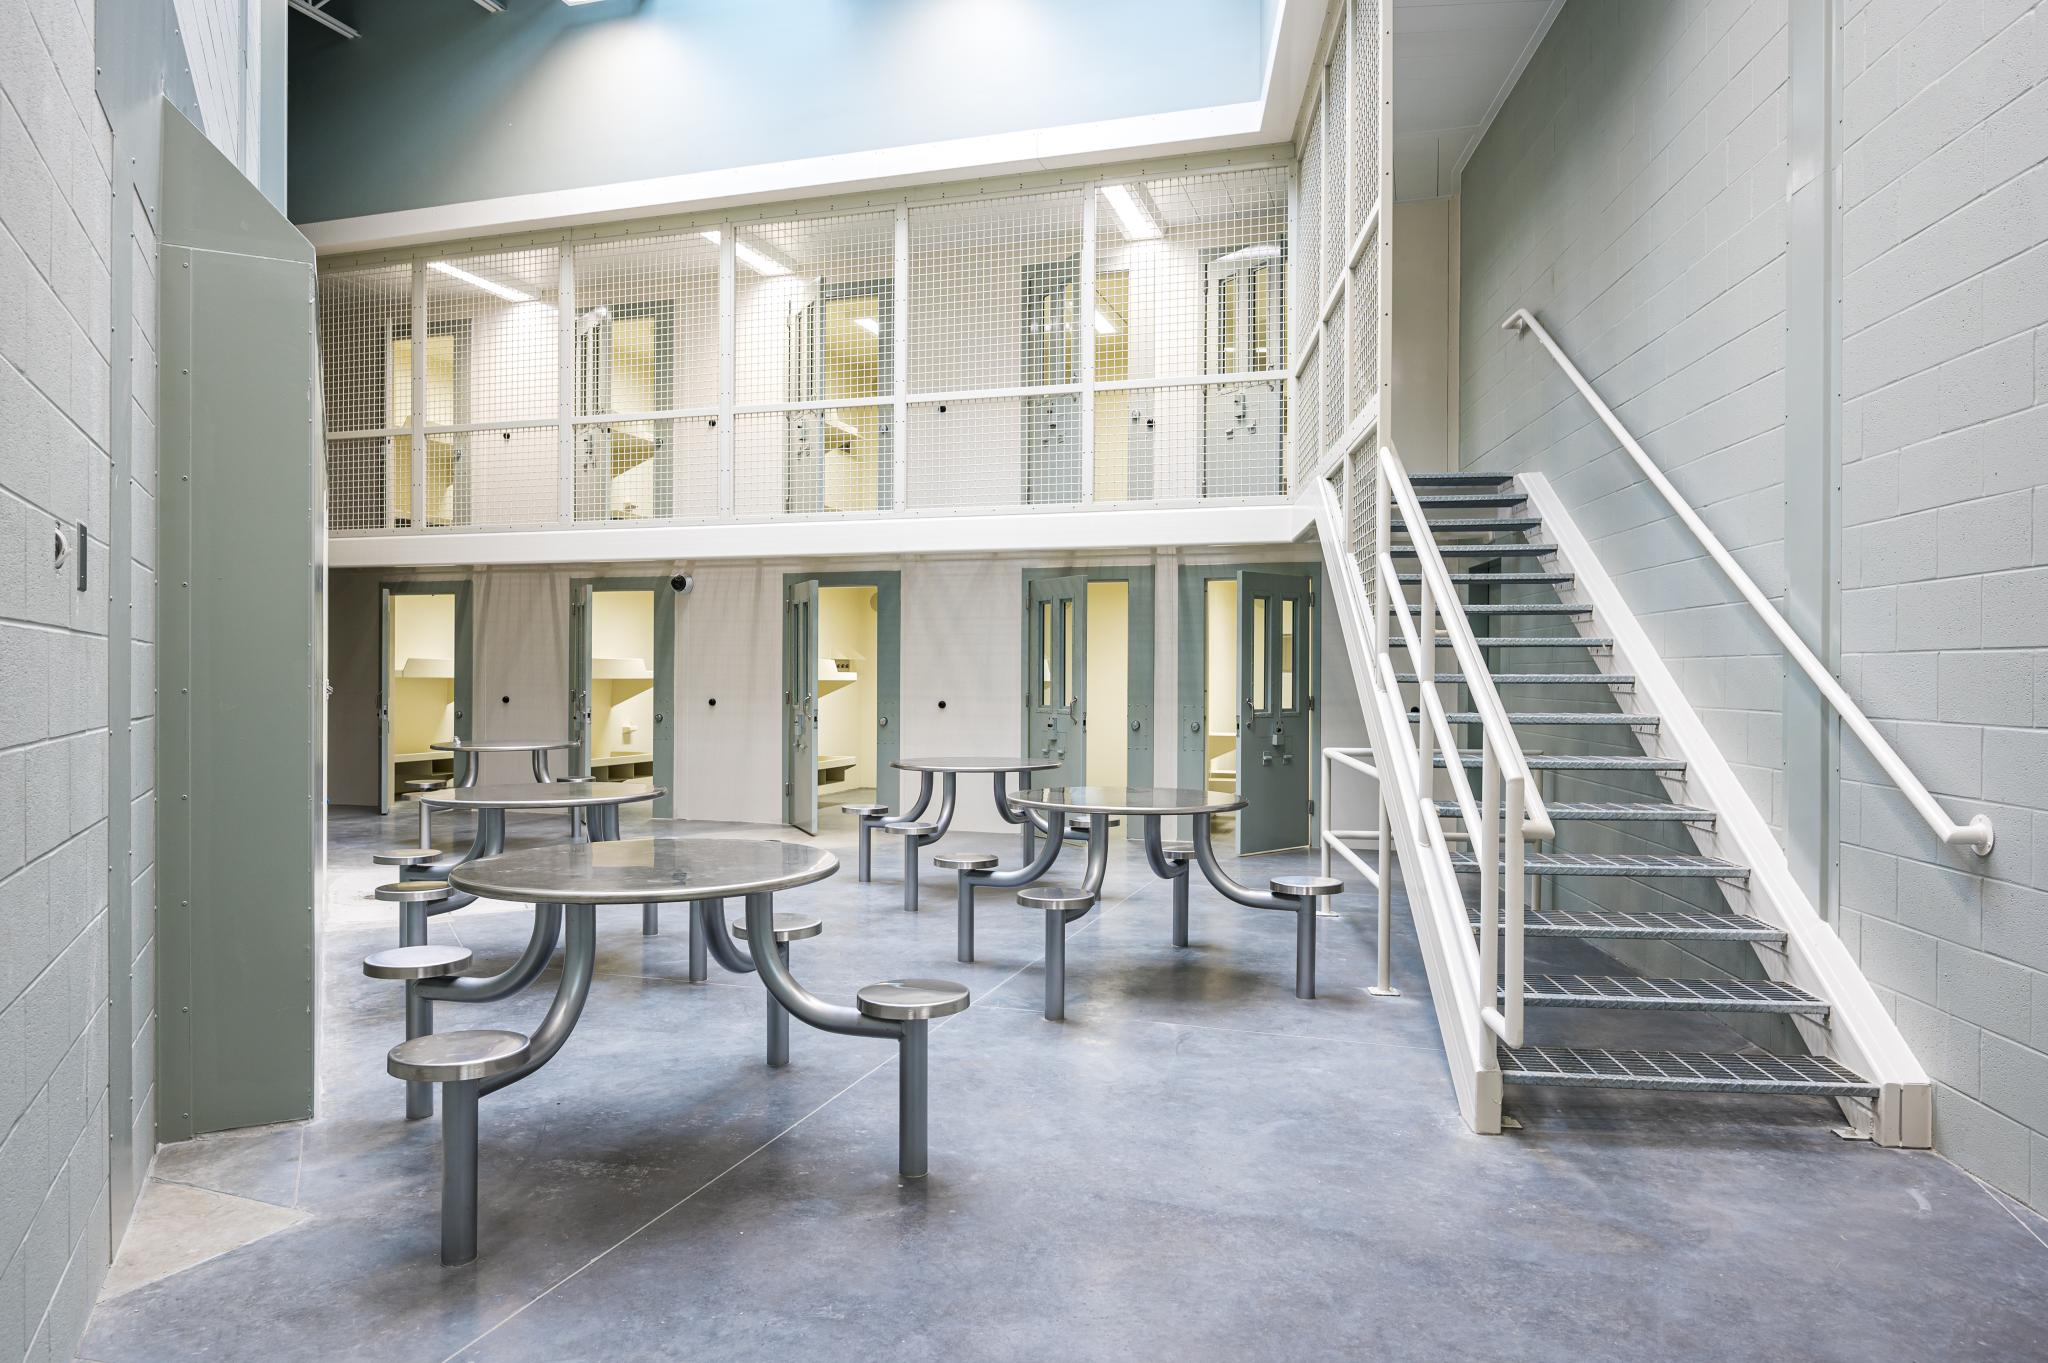 an image of a dayroom inside a jail